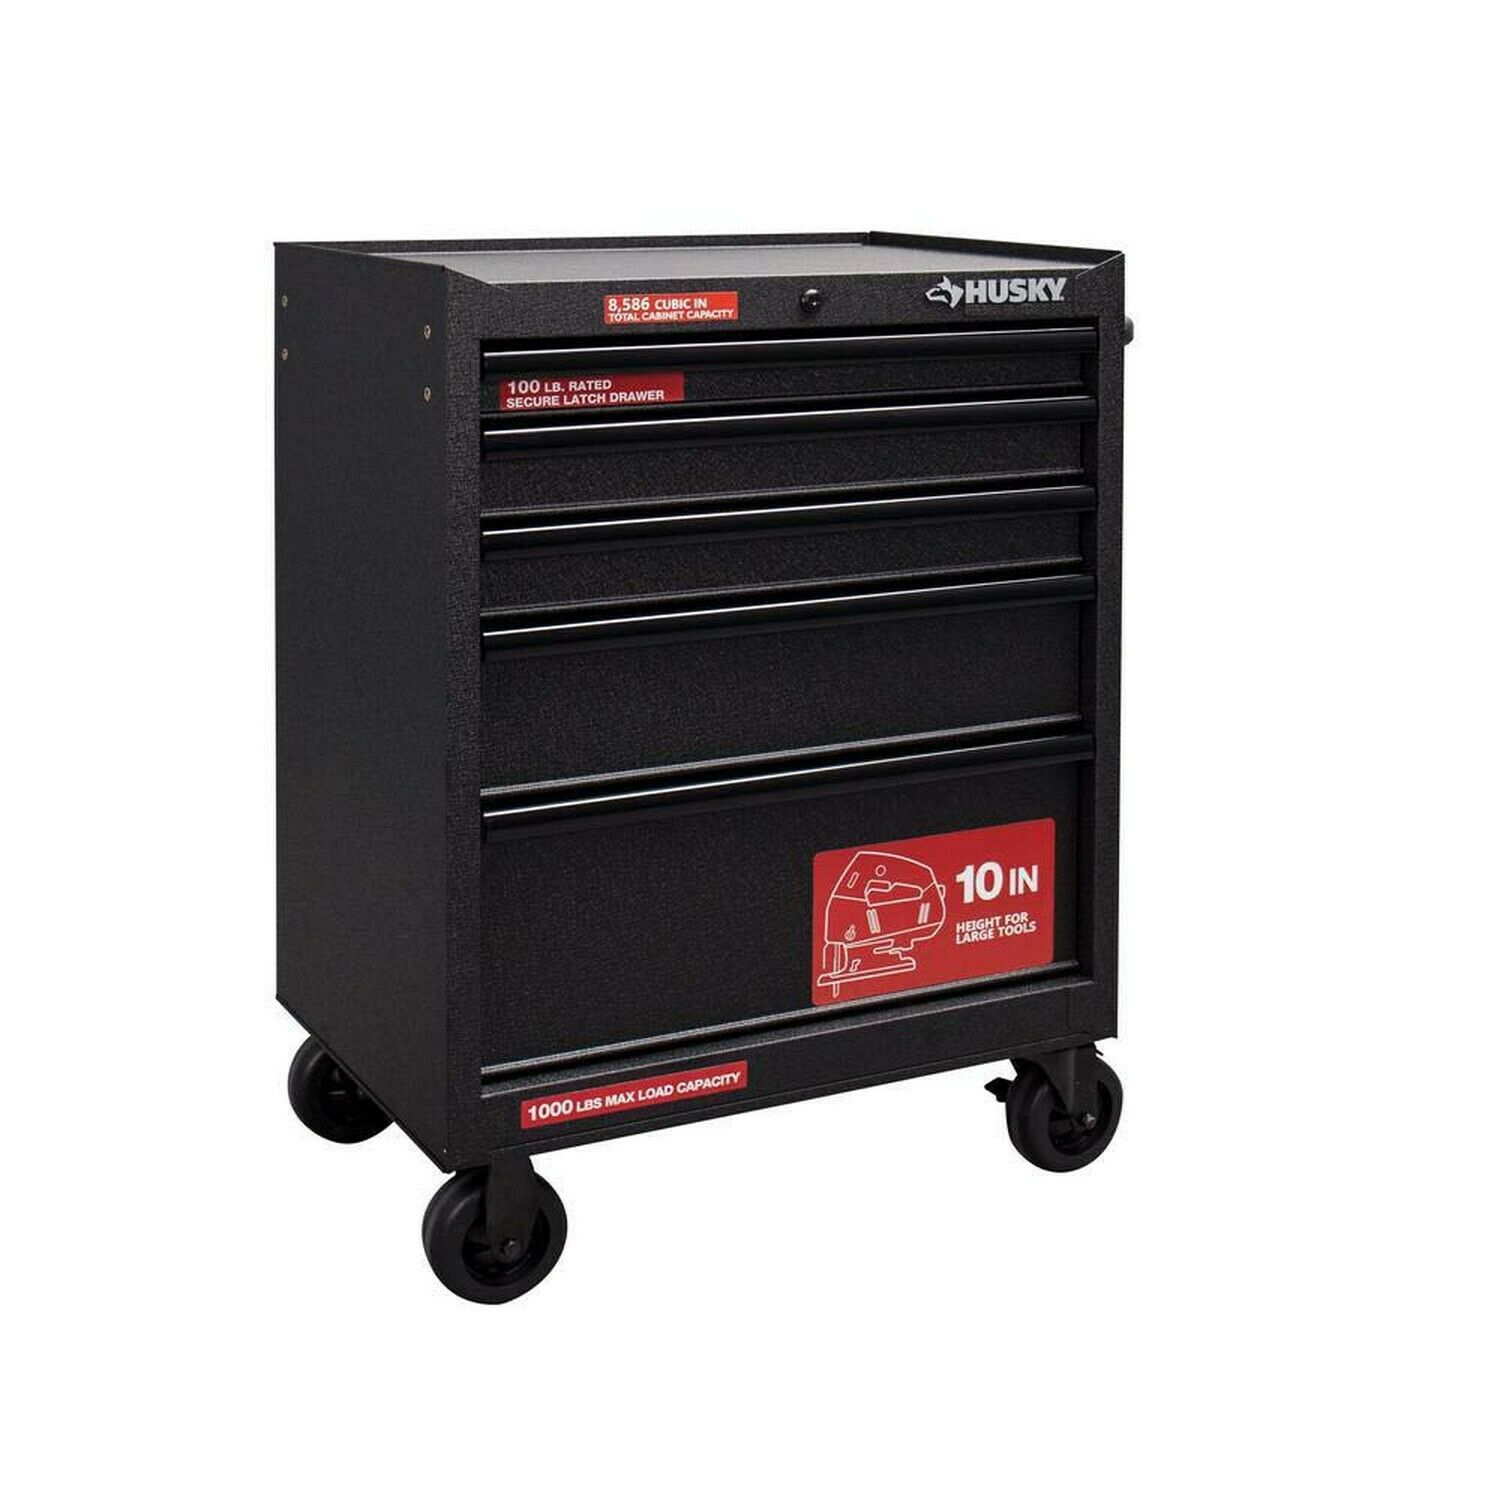 Husky 27 In W 9 Drawer Tool Chest And Cabinet Set Black H5ch2r H4tr2r For Sale Online Ebay